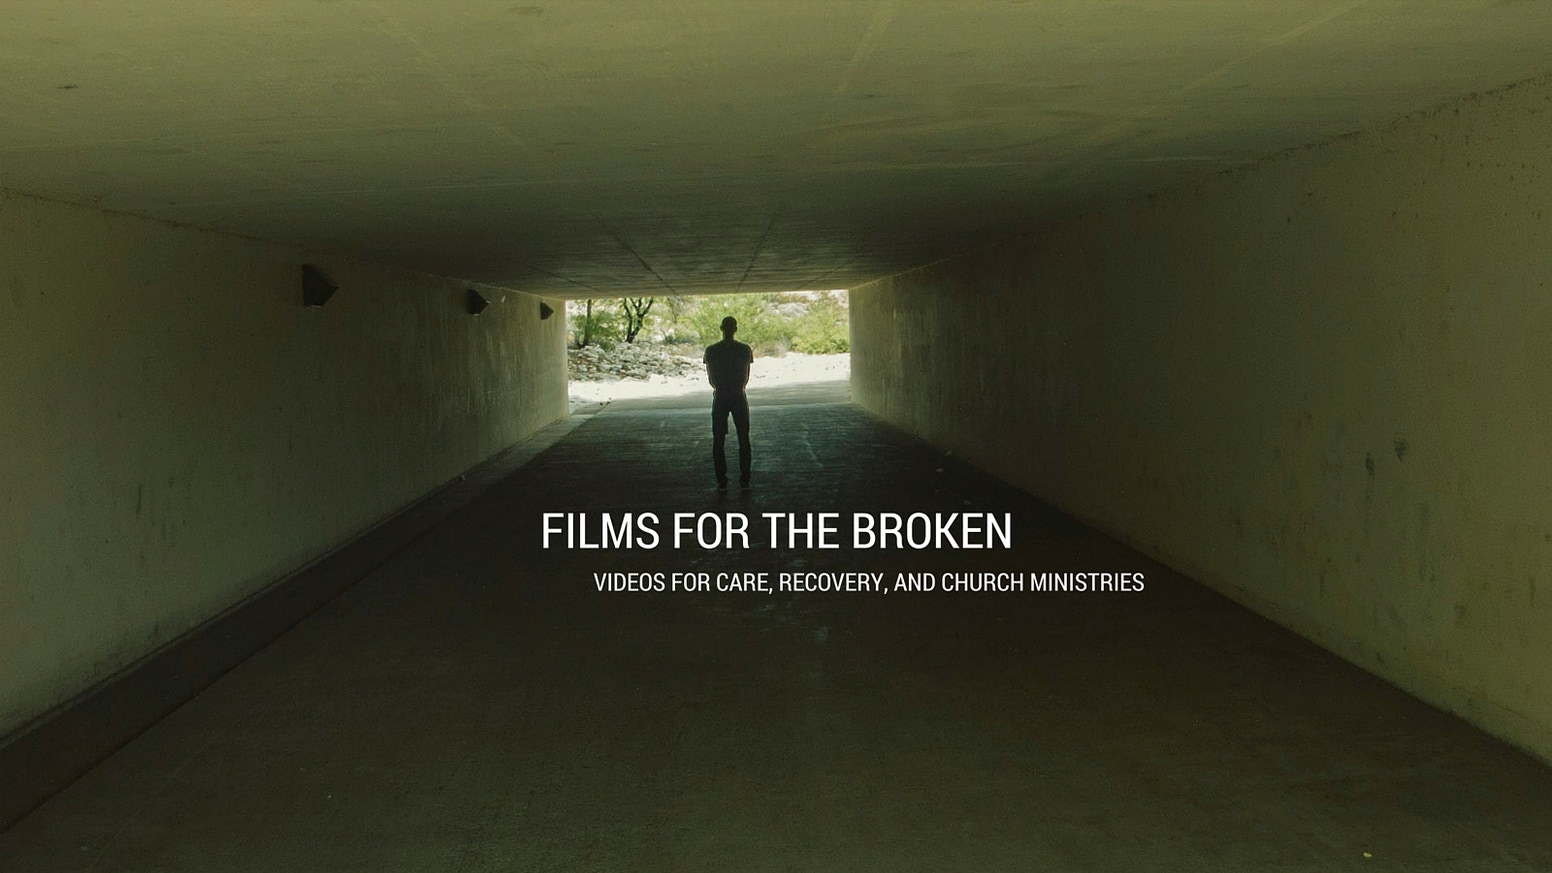 Short, engaging videos for care, recovery, and ministry leaders sent out every month. Church Films will help you reach the broken.